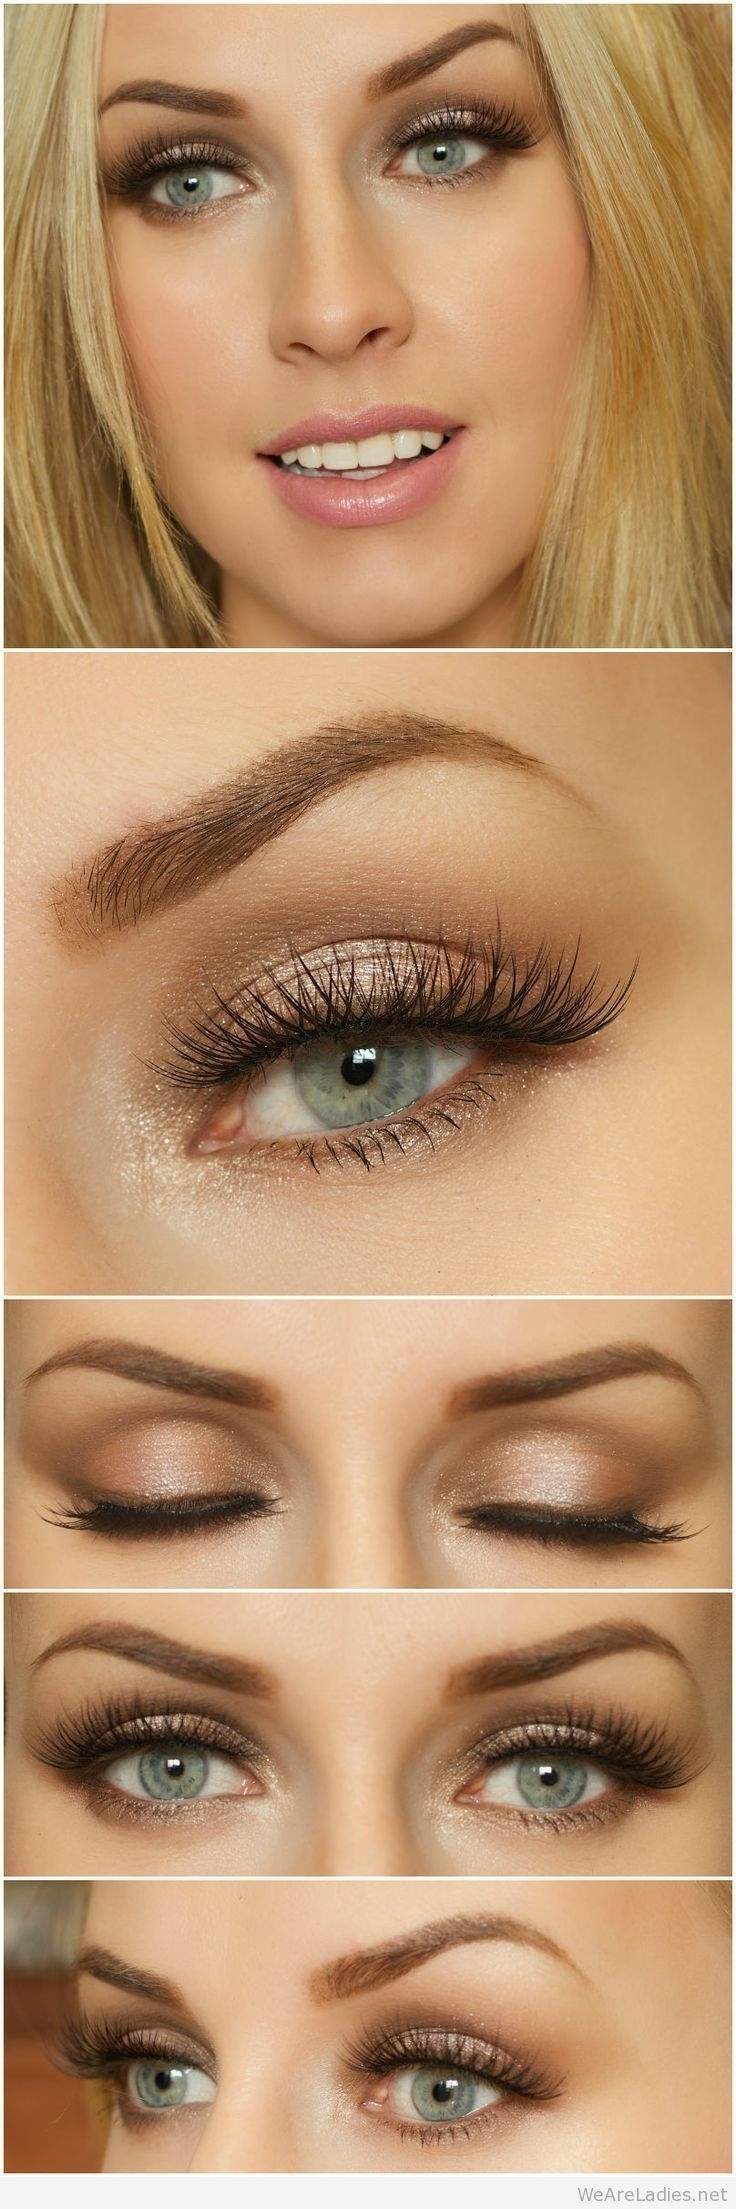 What Color Eyeshadow For Green Eyes And Pale Skin – Wavy Haircut regarding Best Eyeshadow For Green Eyes And Pale Skin